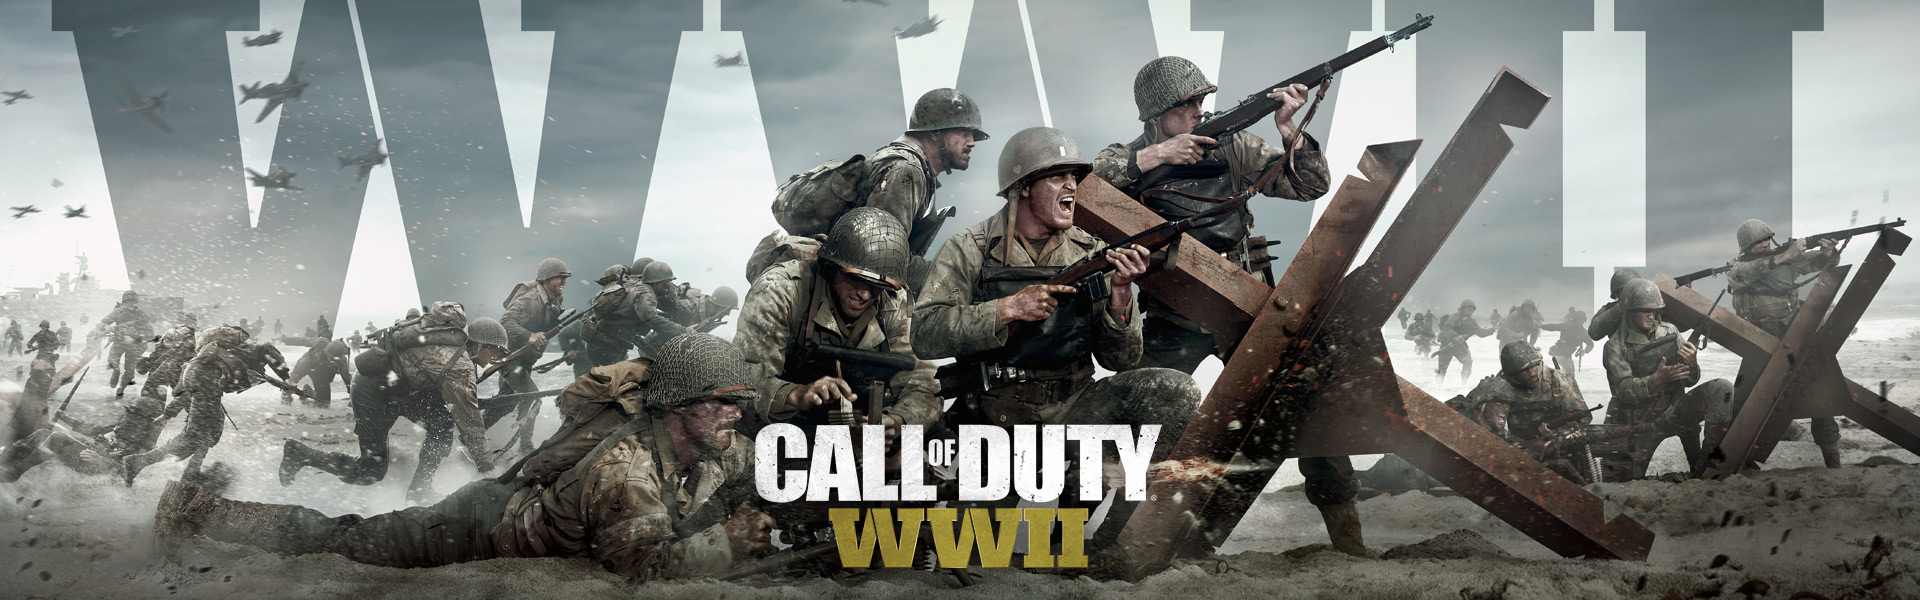 Call of Duty WWII, Soldiers storm beach at Normandy